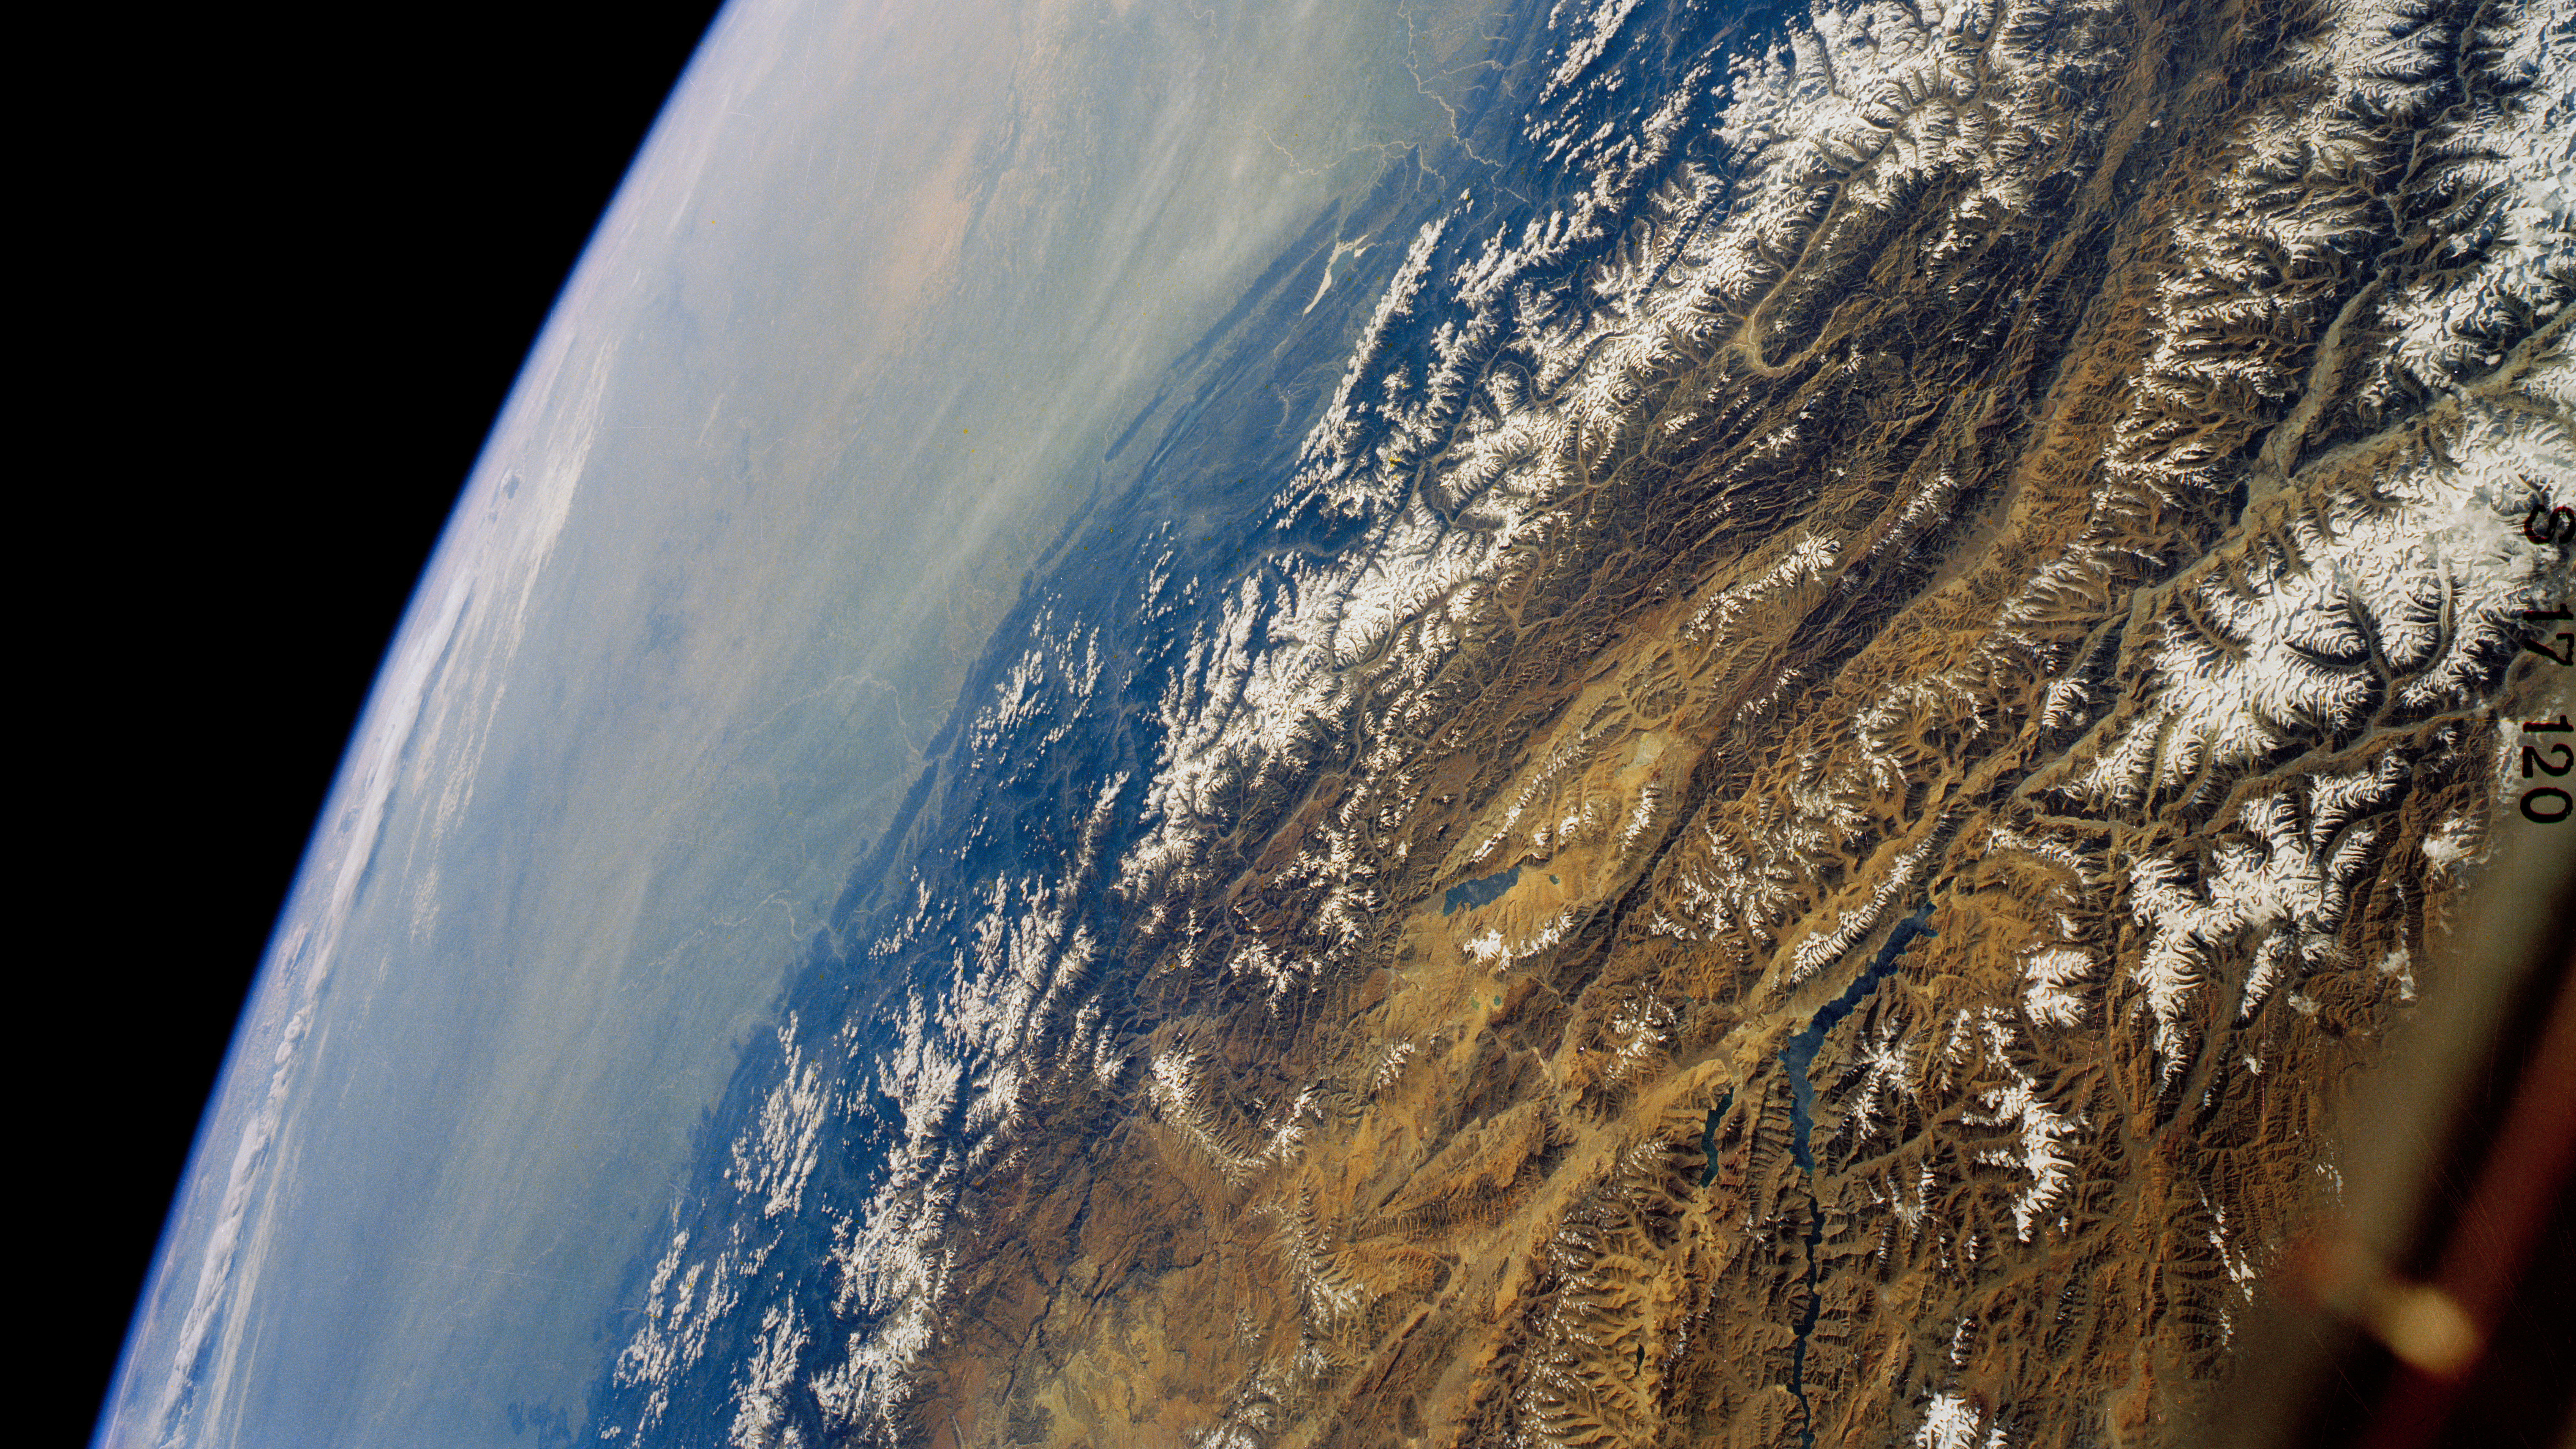 View of the Himalayas from space